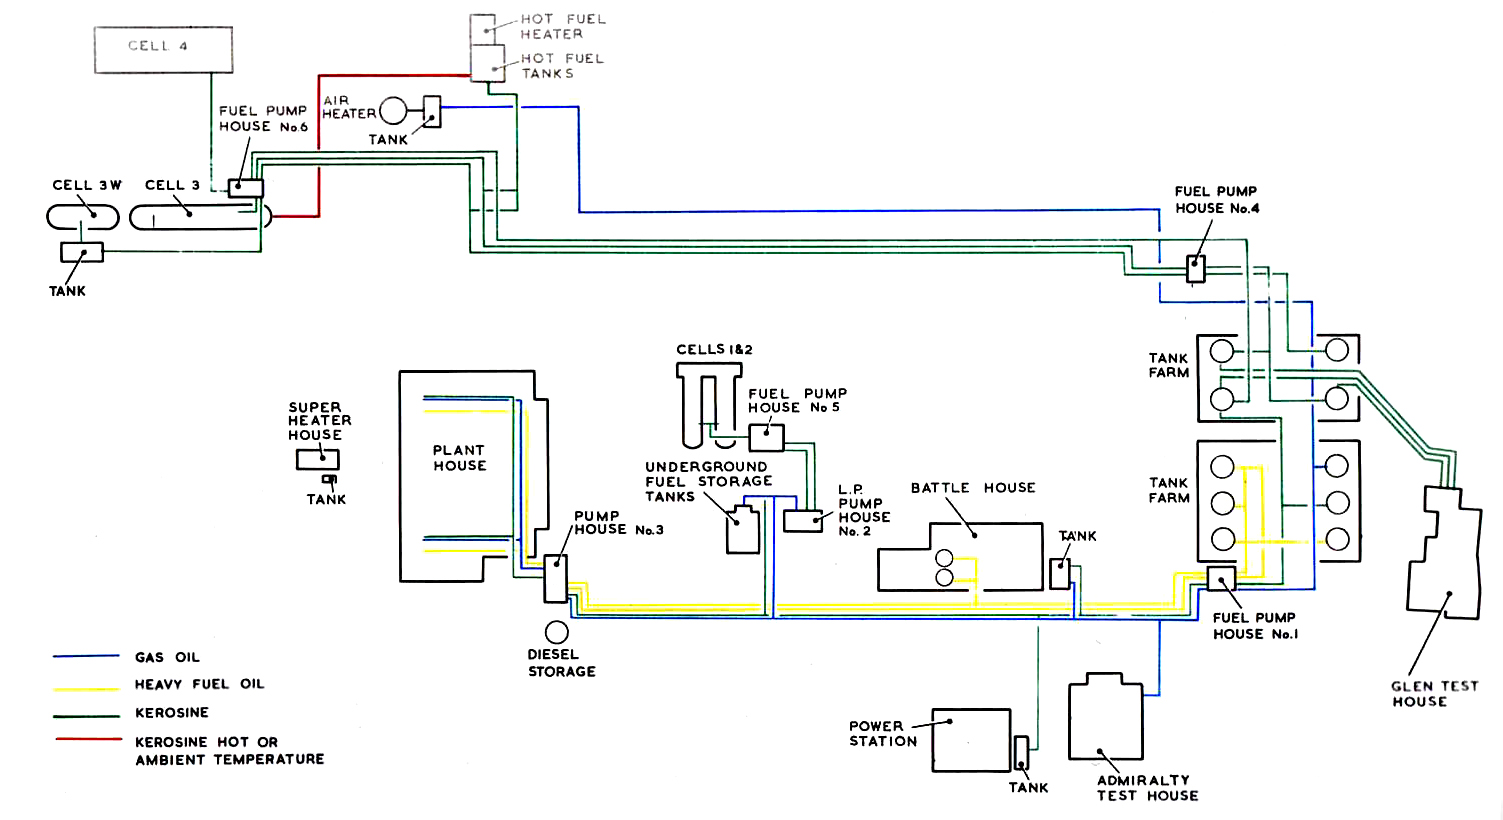 Pyestock Power Plant Boiler Layout 517 Of New Site Fuel Distribution System